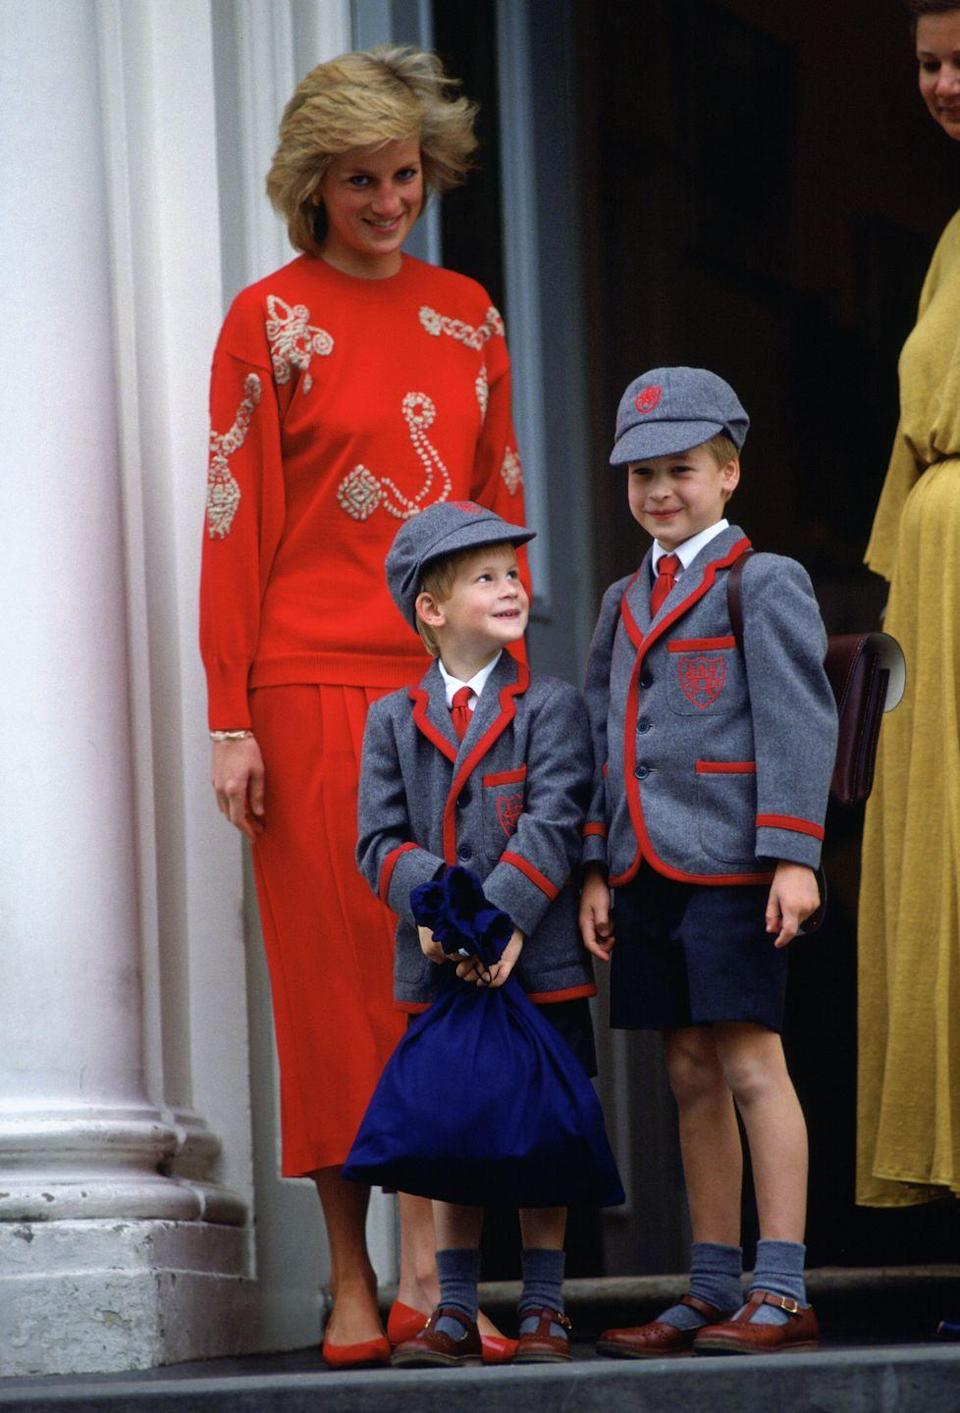 """<p>This 1989 moment comes courtesy of <a href=""""https://www.townandcountrymag.com/society/tradition/g14783349/royal-family-first-day-of-school-photos/"""" rel=""""nofollow noopener"""" target=""""_blank"""" data-ylk=""""slk:Prince Harry and William's first day of school"""" class=""""link rapid-noclick-resp"""">Prince Harry and William's first day of school</a>. Consider school uniform blazers the primary school version of a royal style staple.</p>"""